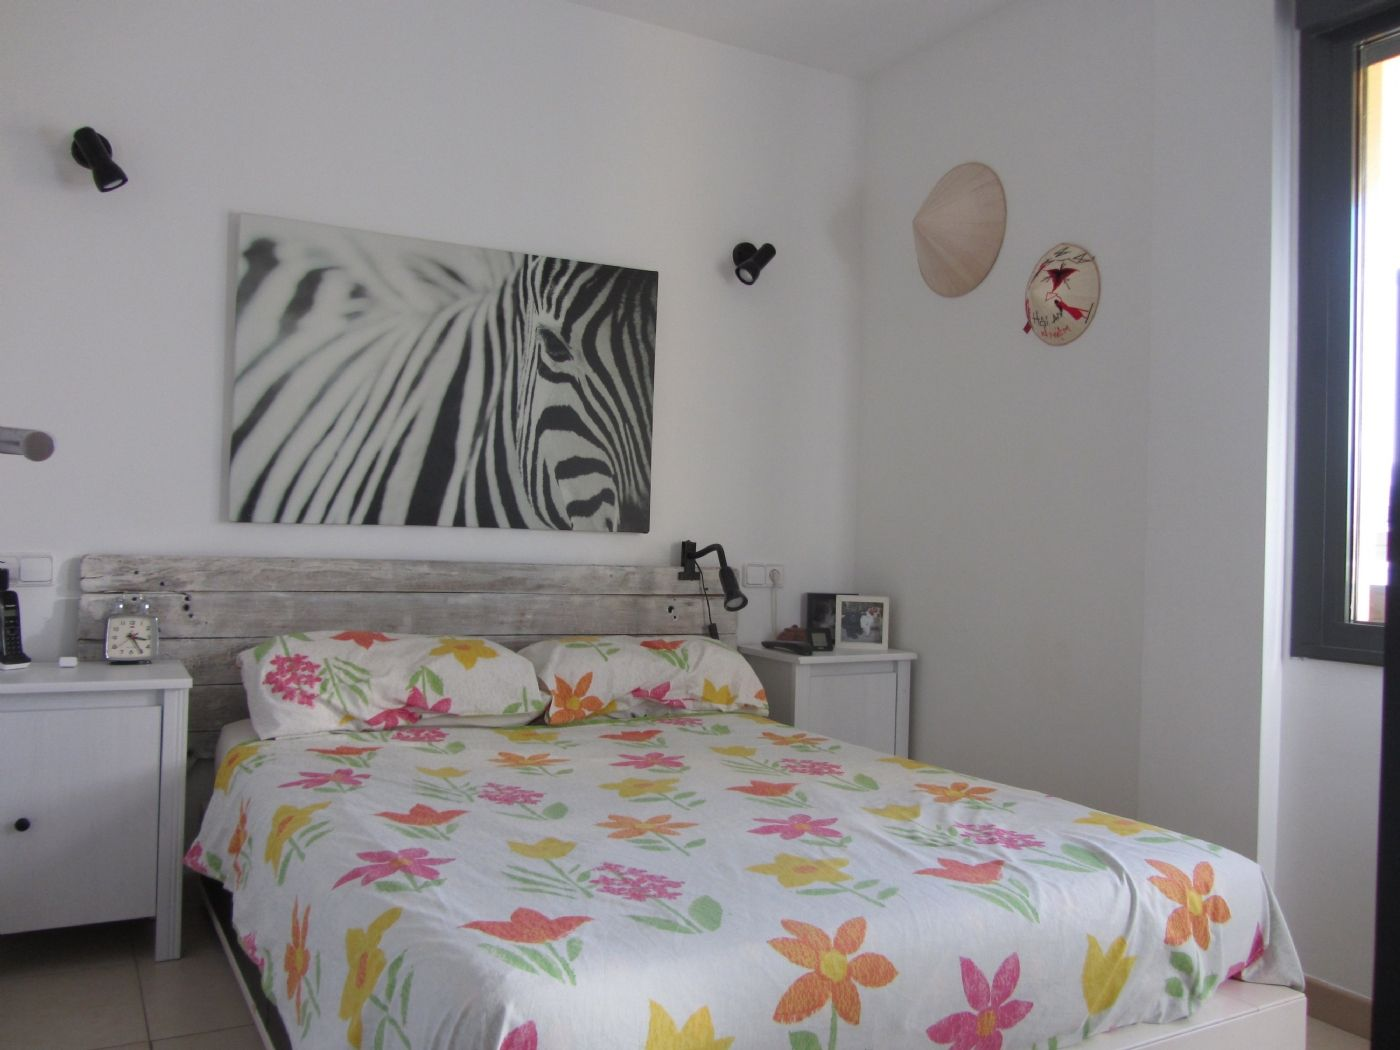 Flat in Guillem martí coll, 10. Piso ideal para parejas o para 1 persona